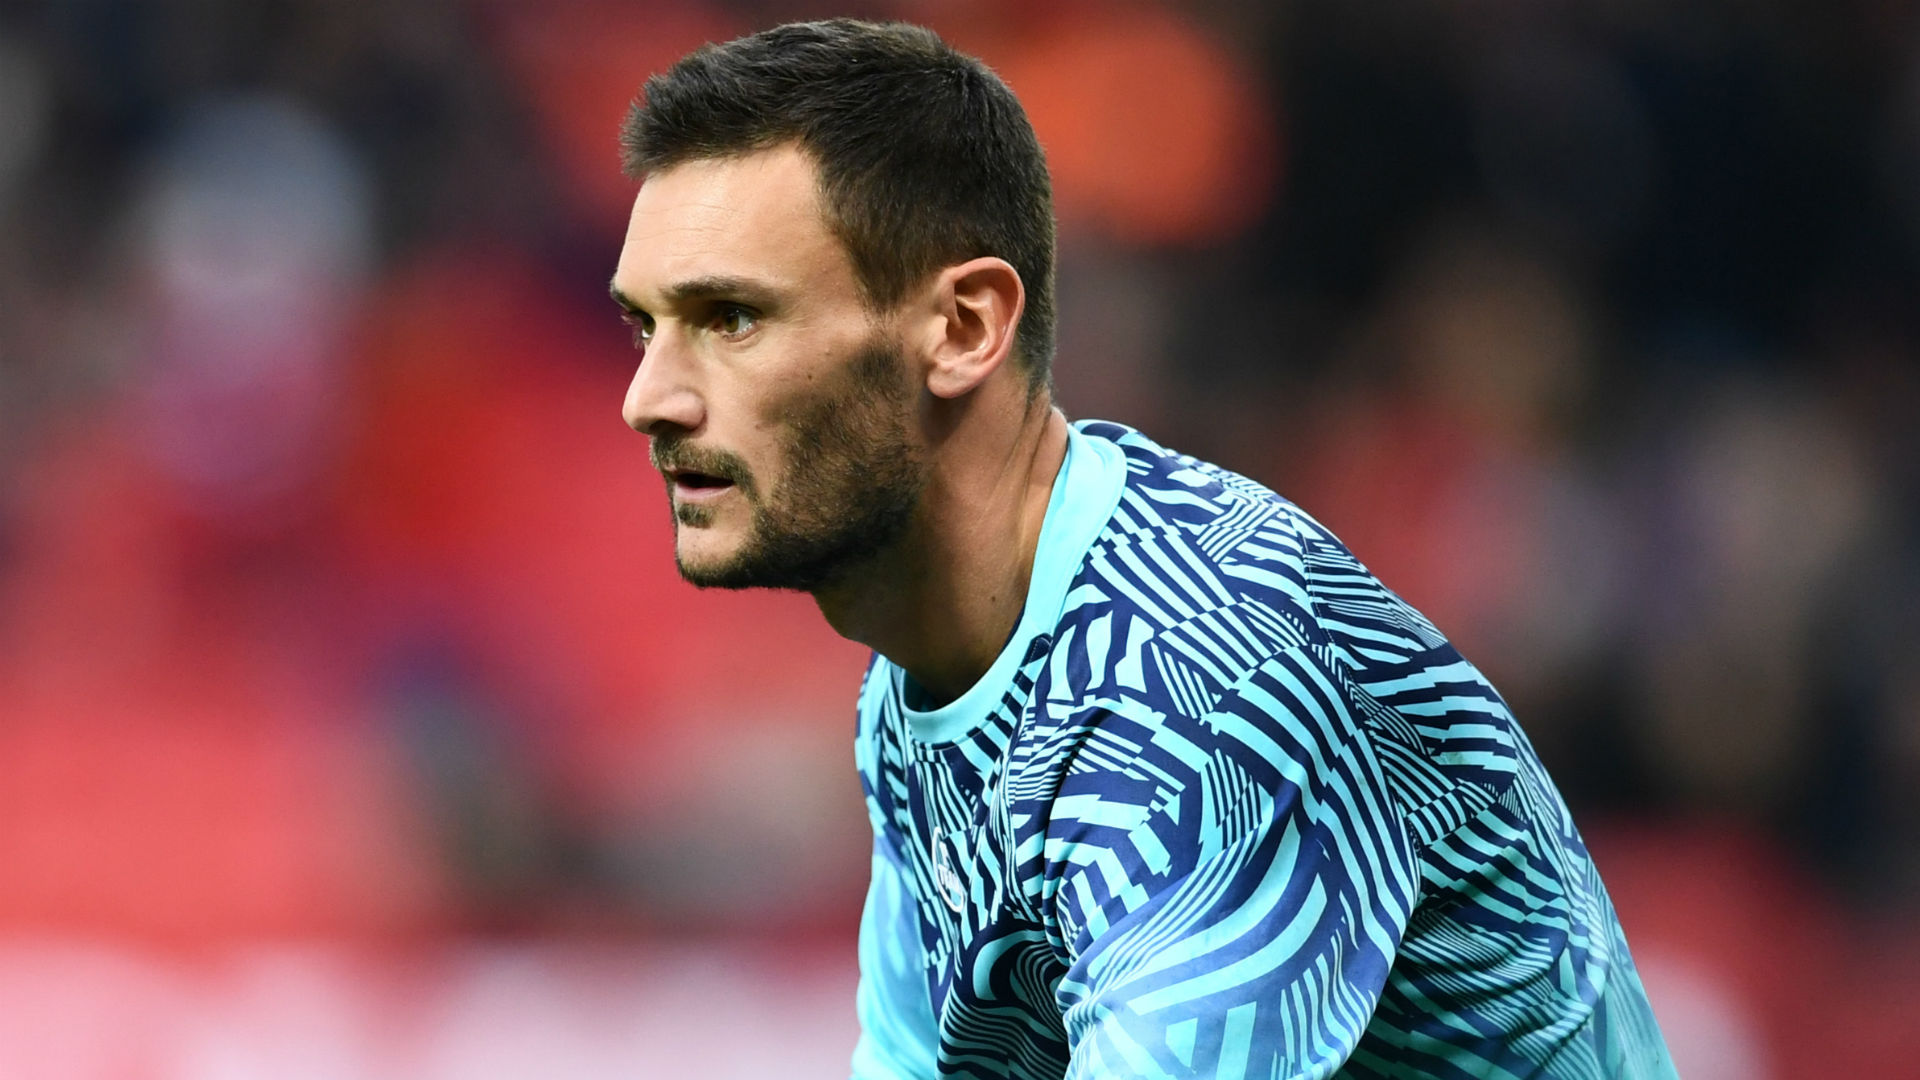 Pochettino: Lloris would have accepted Spurs demotion after drink drive conviction